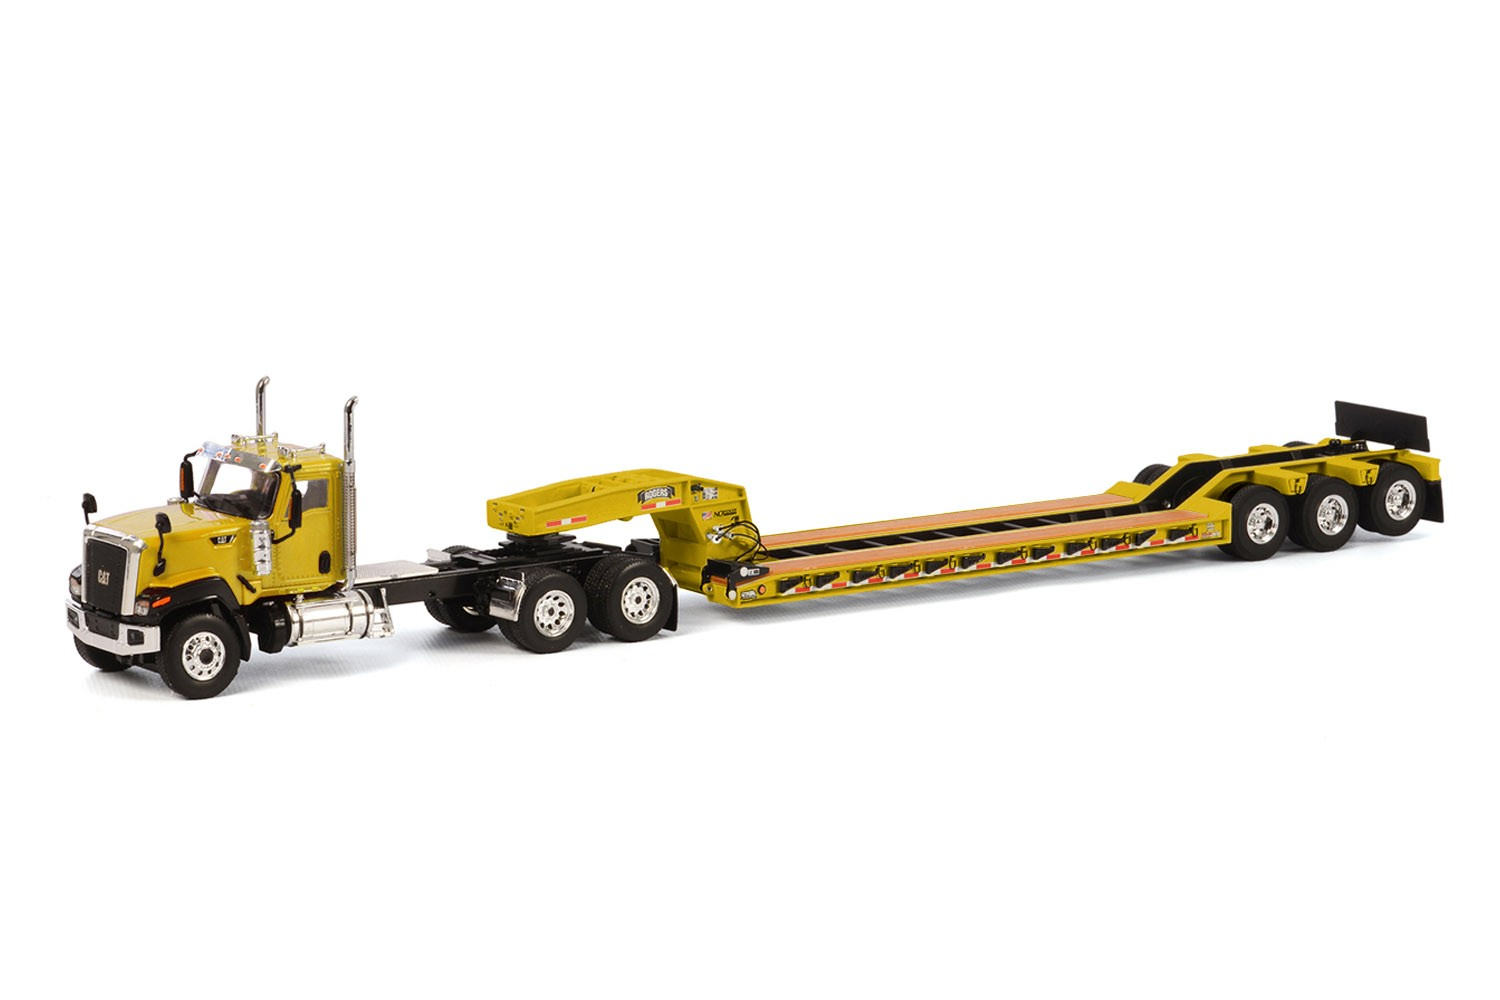 Caterpillar CT680 with 3 axle lowboy-Yellow